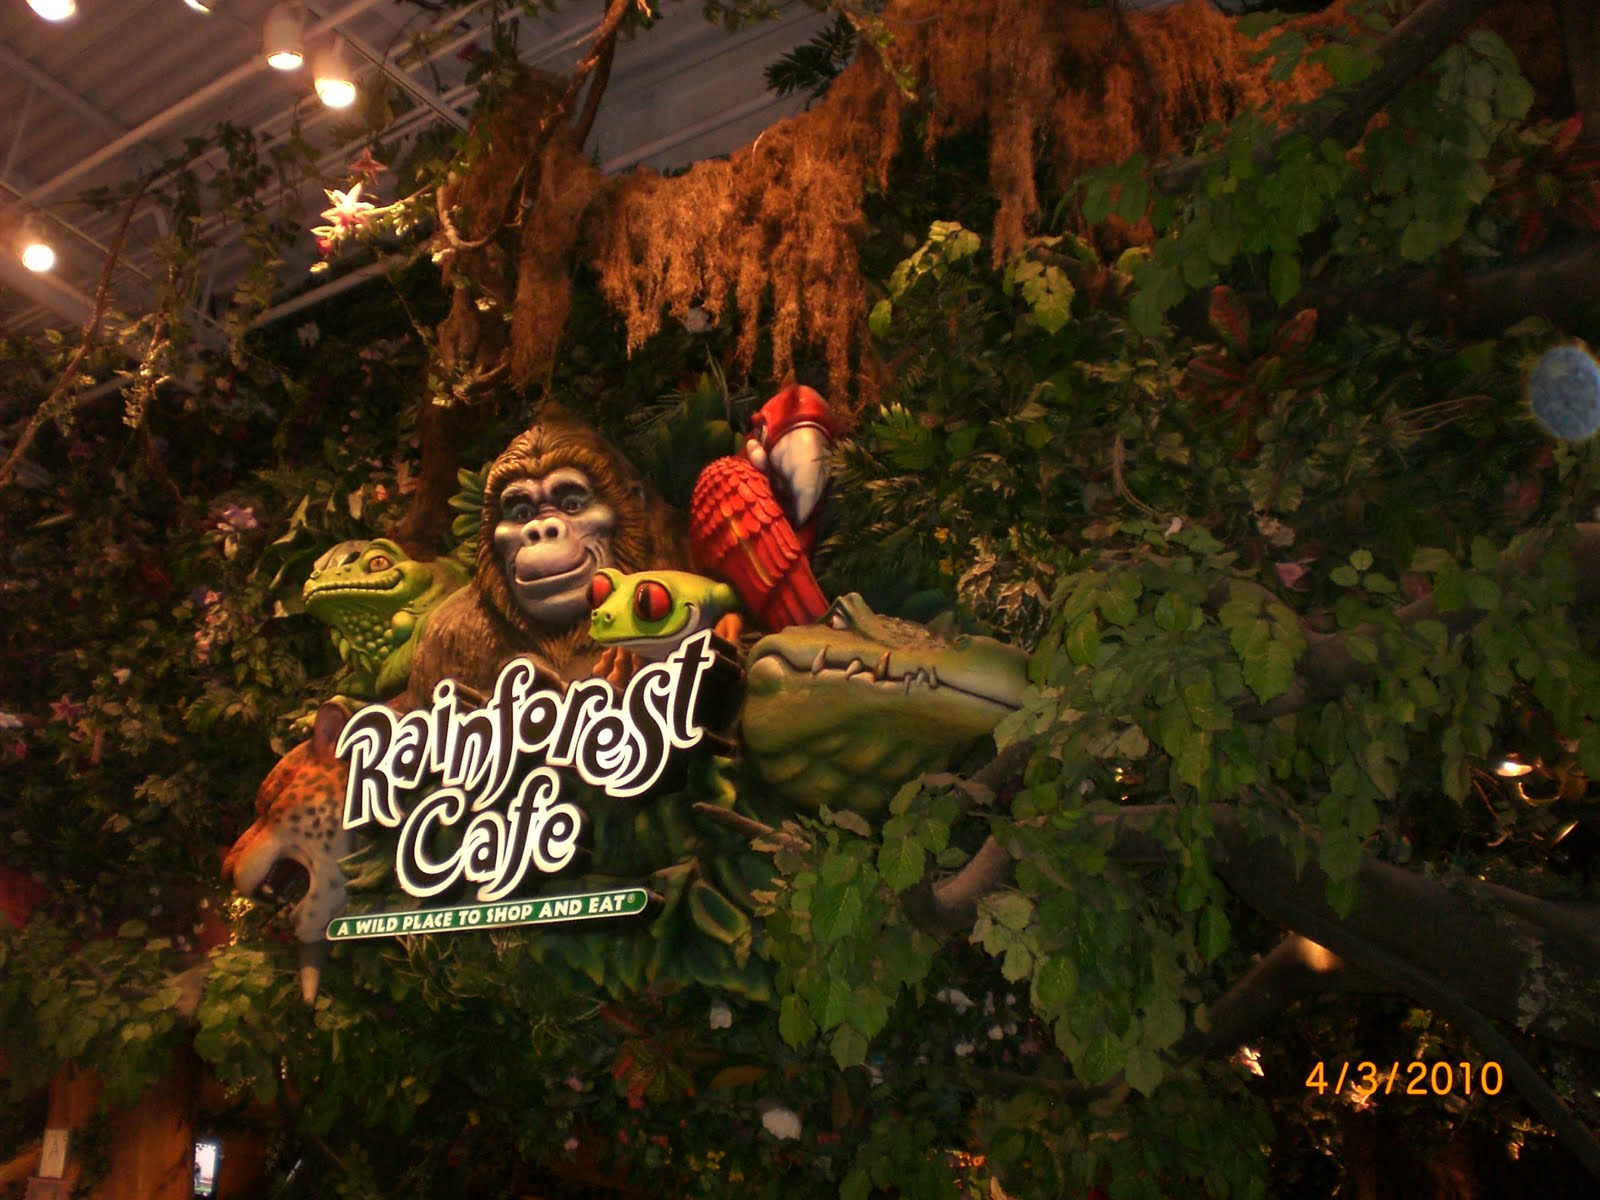 Images Of The Rainforest Cafe